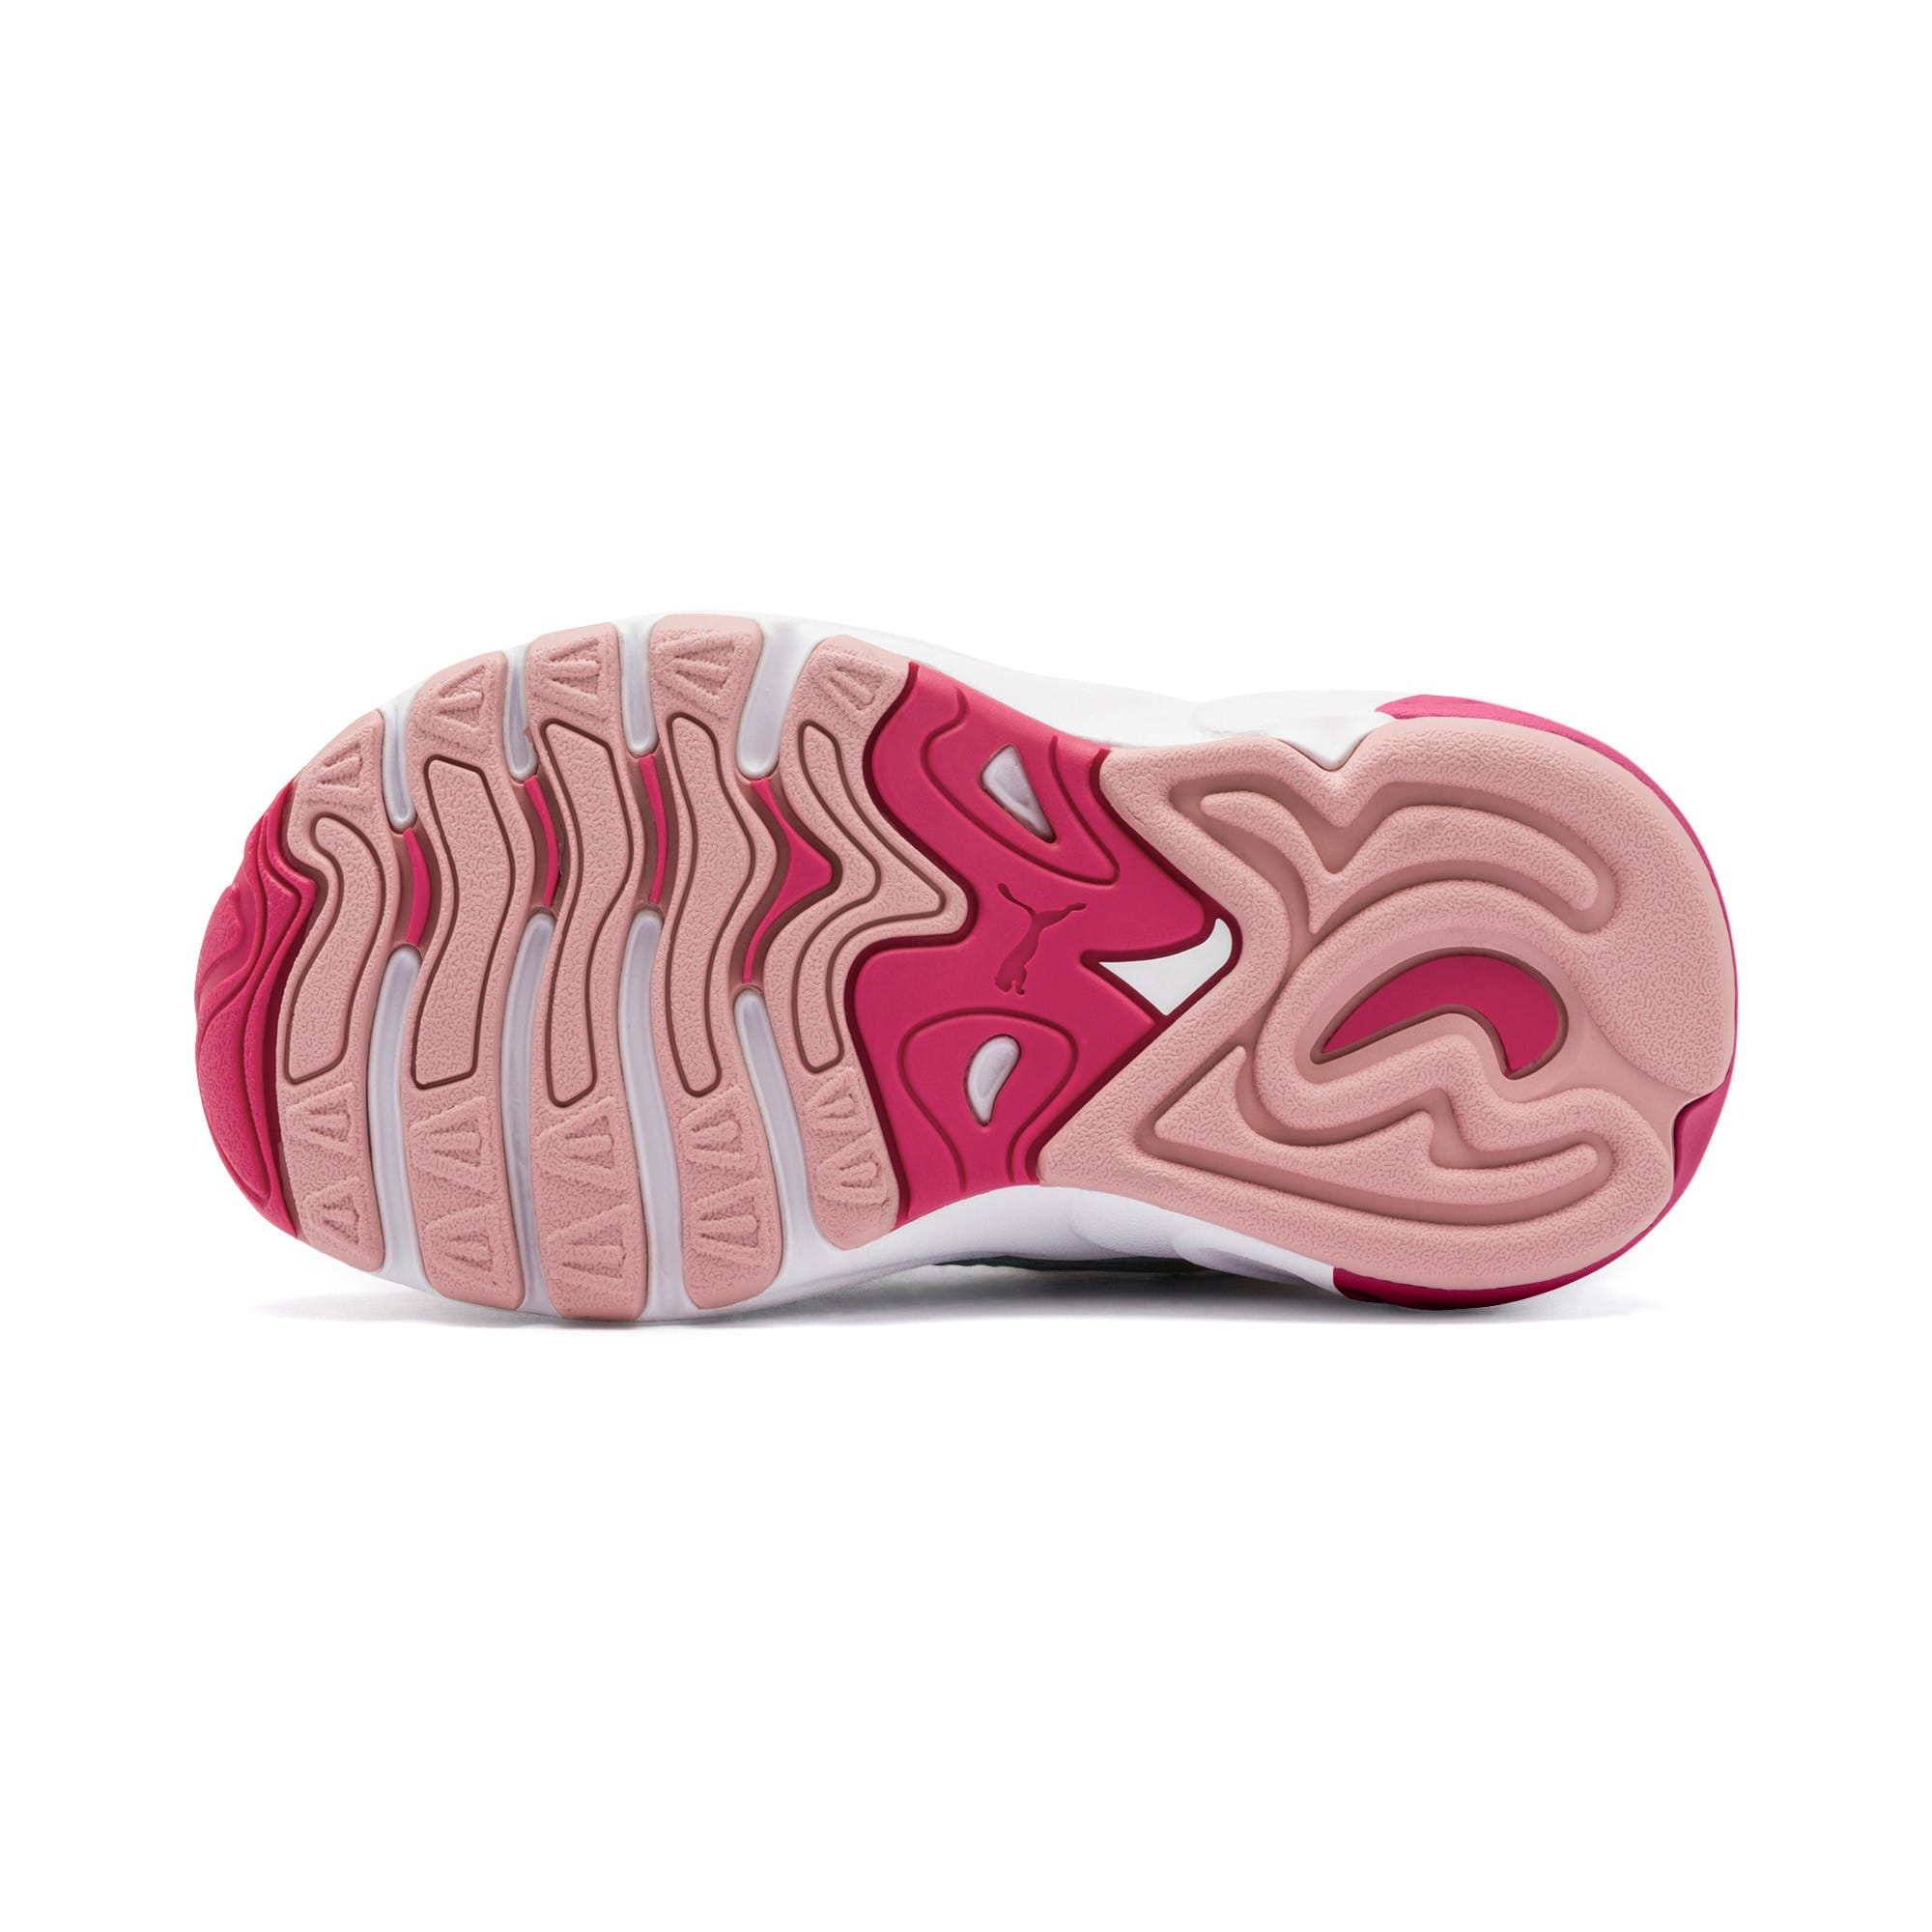 Thumbnail 4 of CELL Alien Cosmic Babies' Trainers, Bridal Rose-Milky Blue, medium